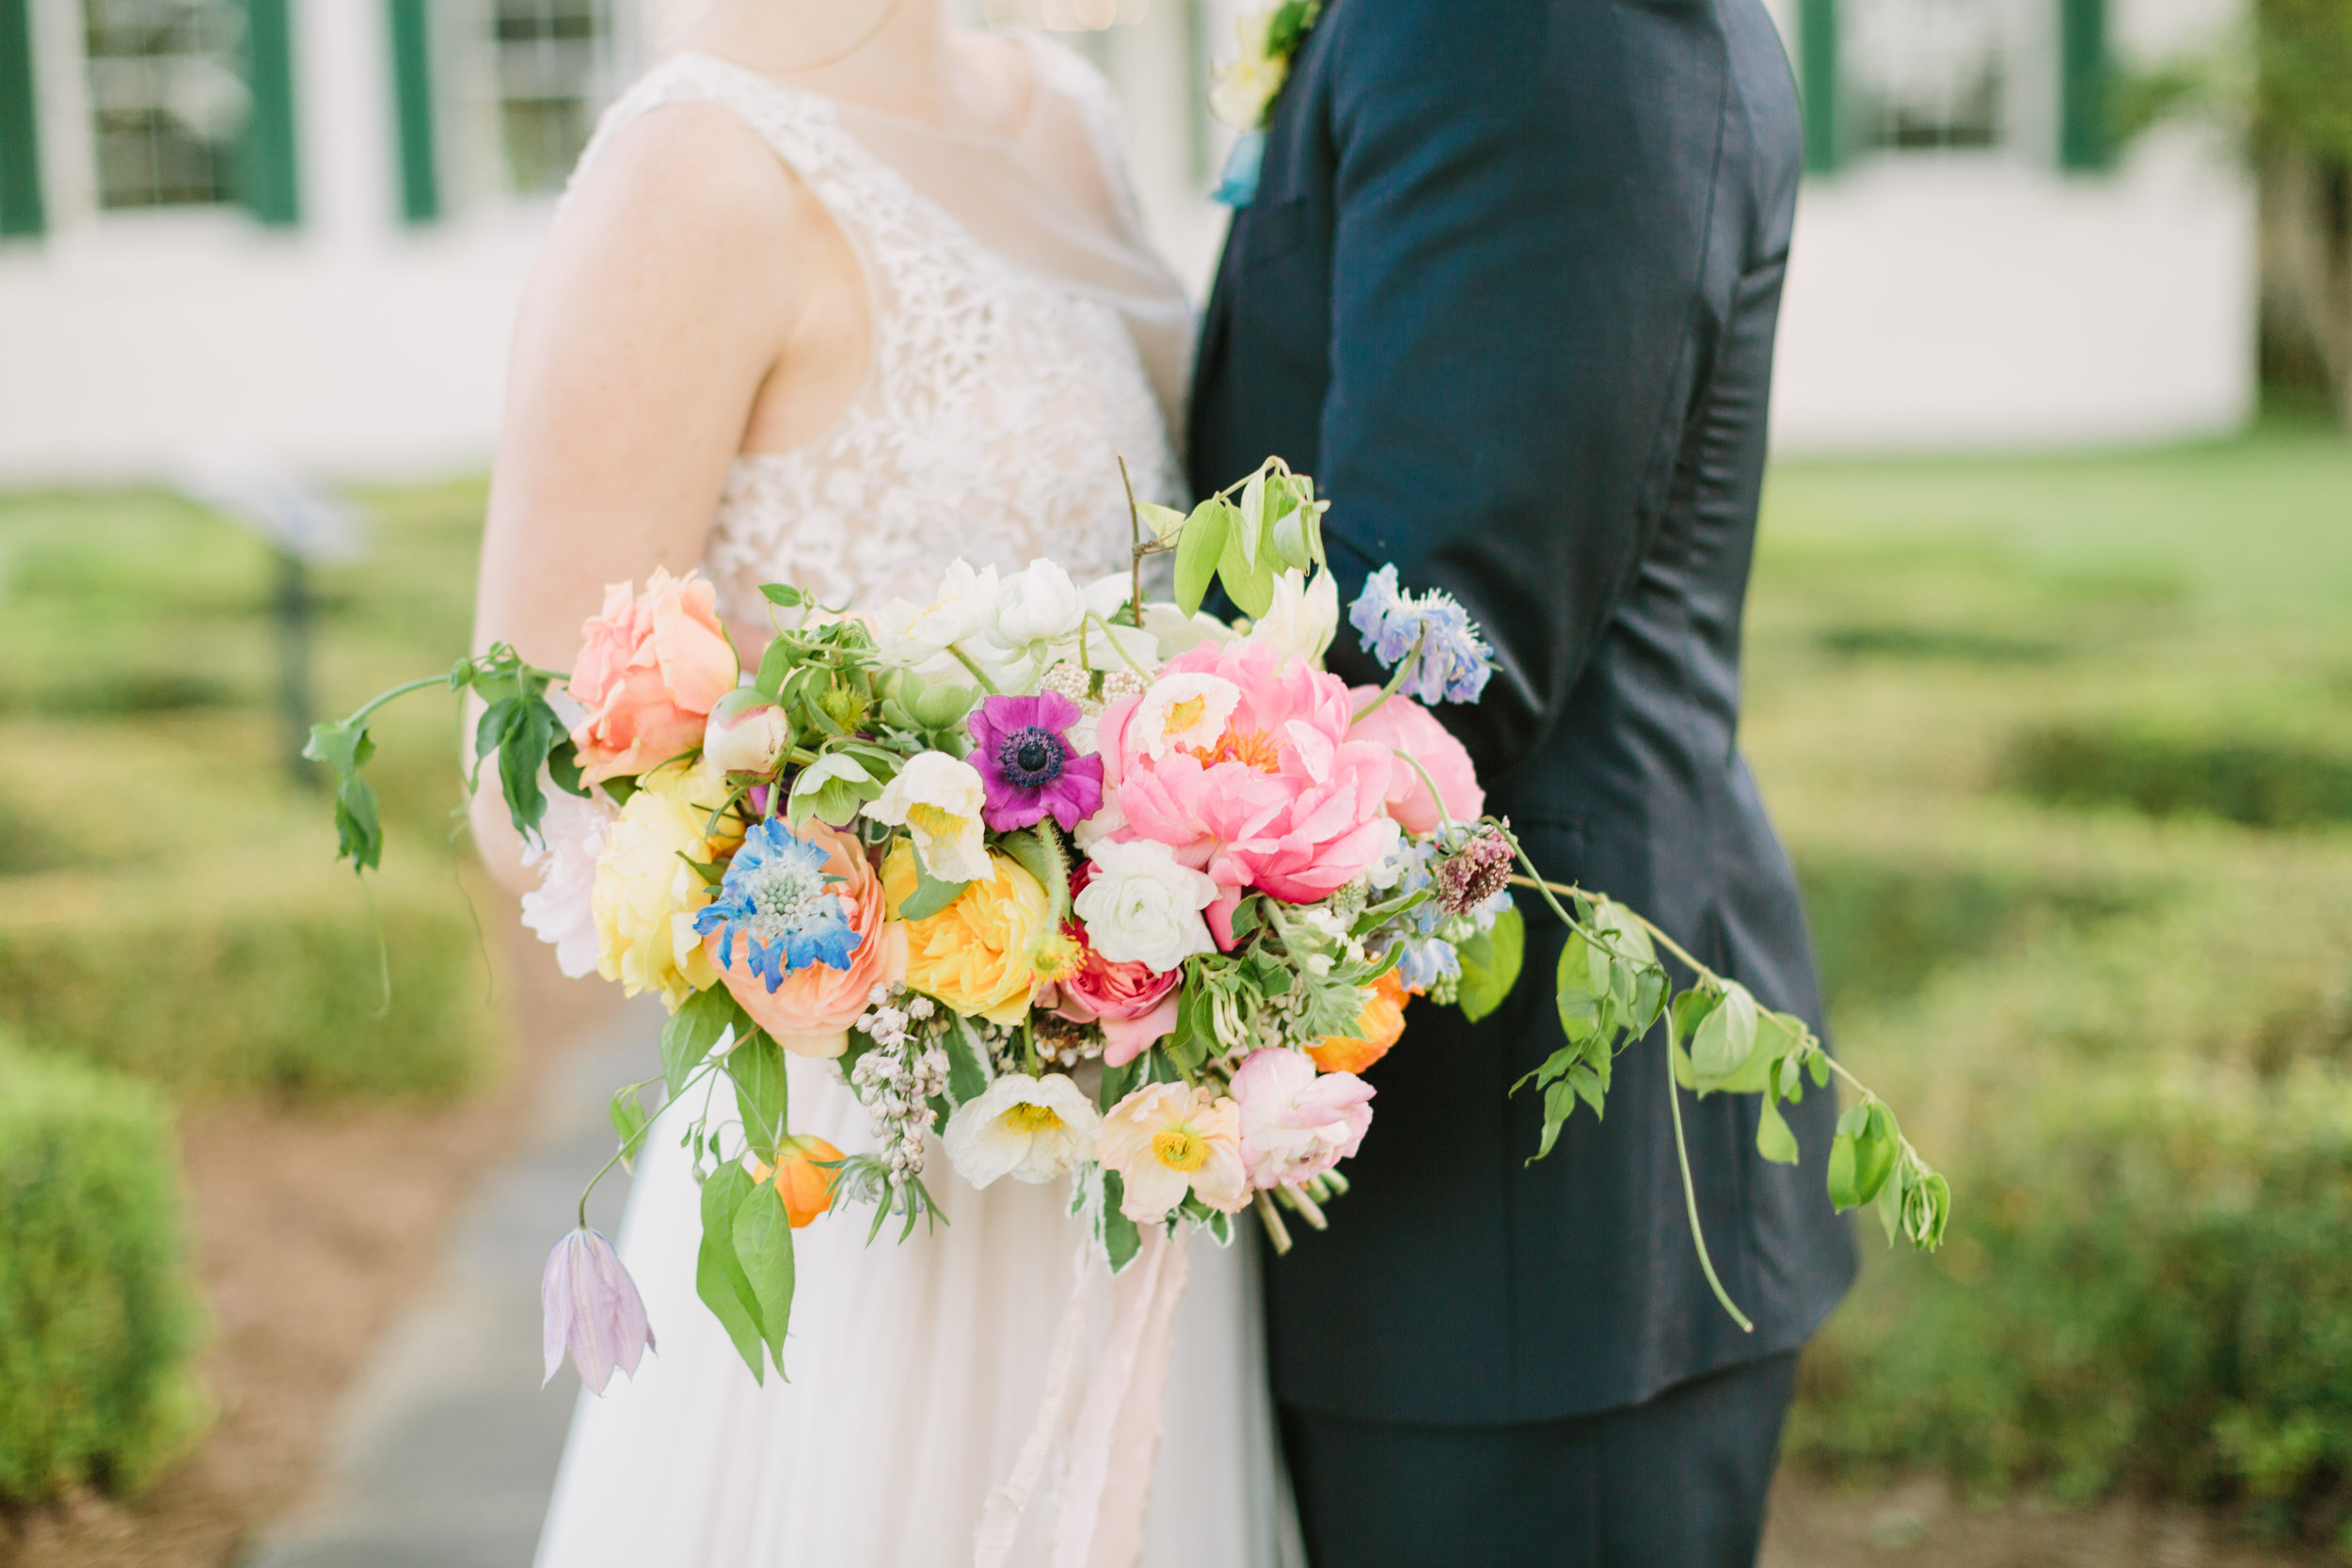 jessica-zimmerman-events-summer-wedding-colorful-spring.JPG